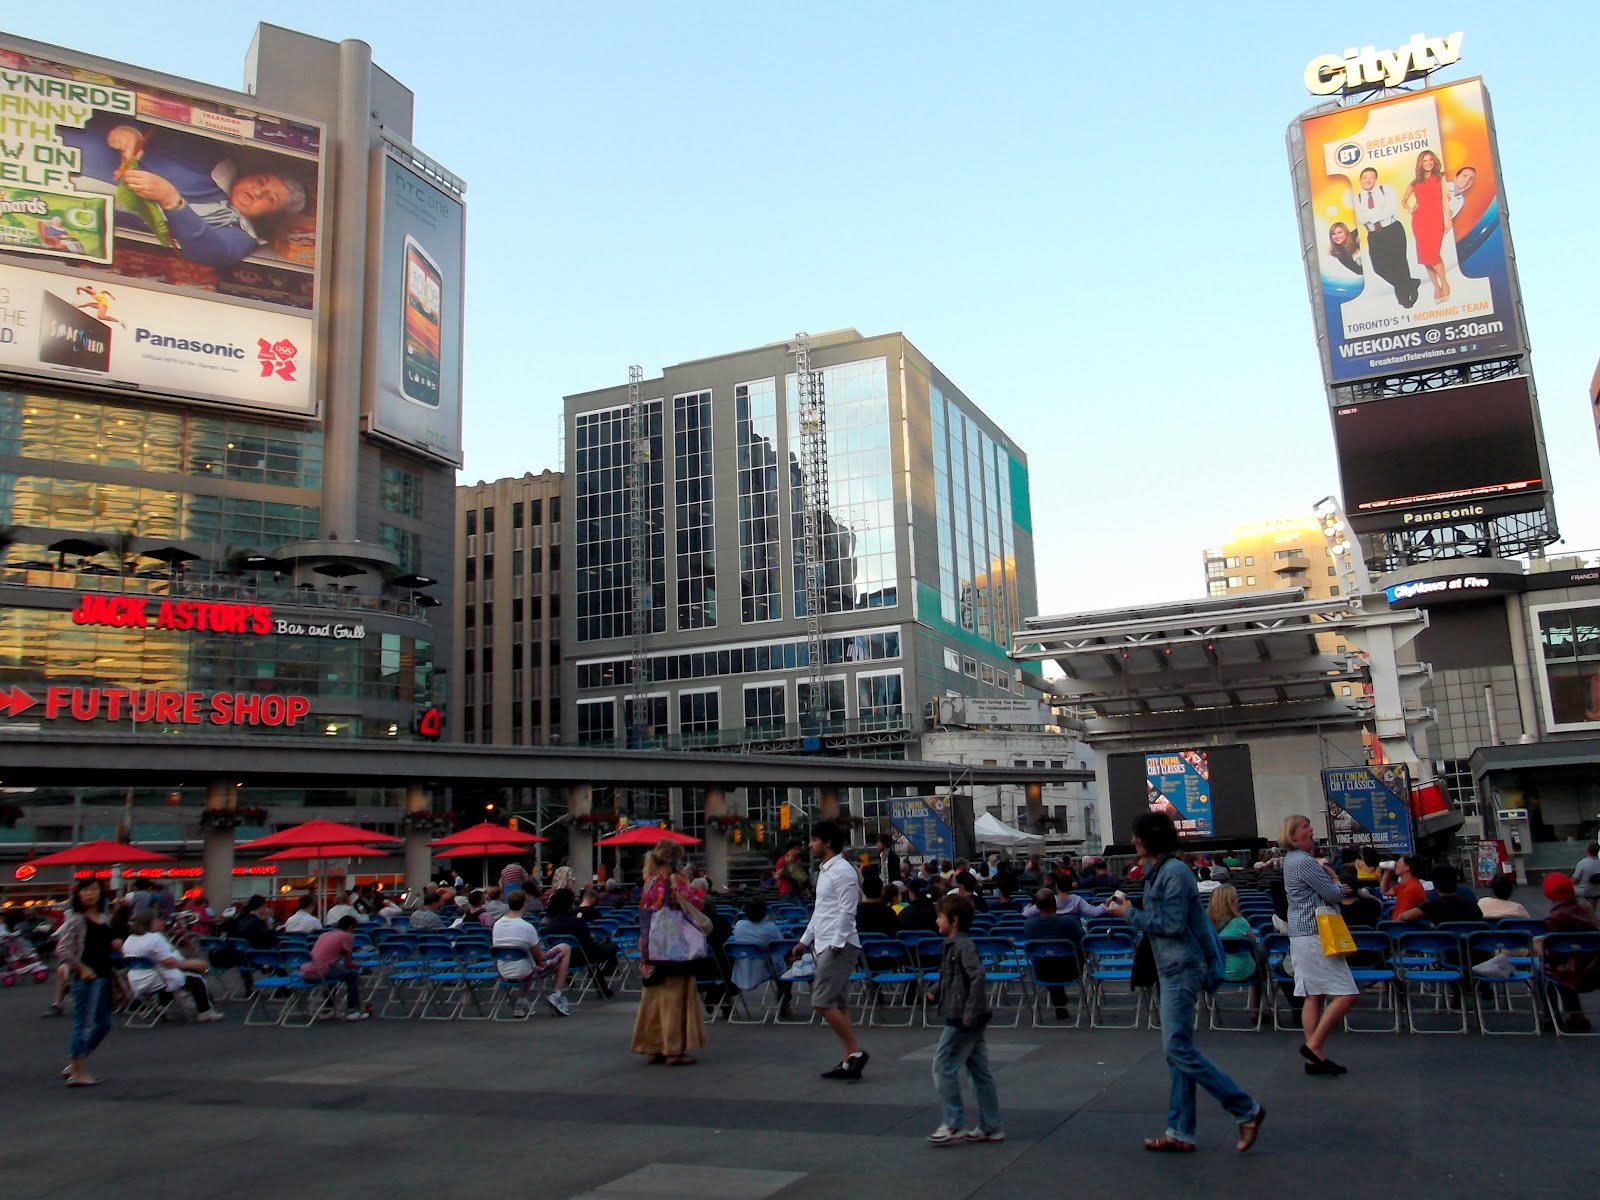 yonge dundas square 56 reviews of yonge-dundas square there is always something going on in the square and it's a great place to people watch my husband and i always grab a paper and head to the square each and every visit to toronto regardless of the weather it's.